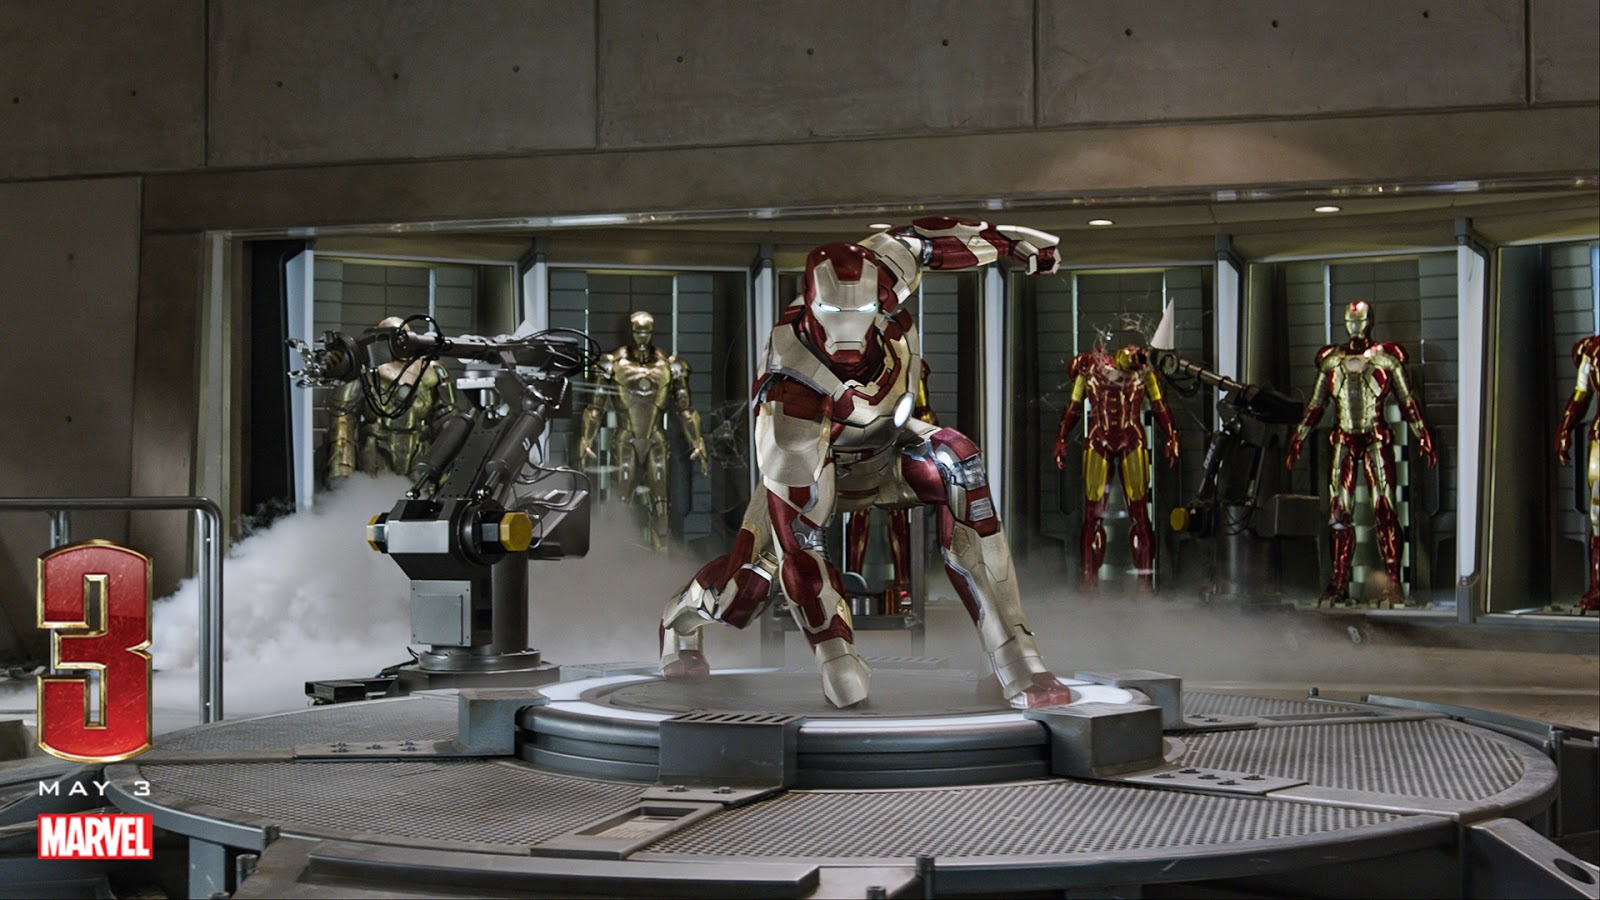 Iron Man 3 2013 HD Wallpapers 1080p Free Download At Hdwalle May 1920x1080